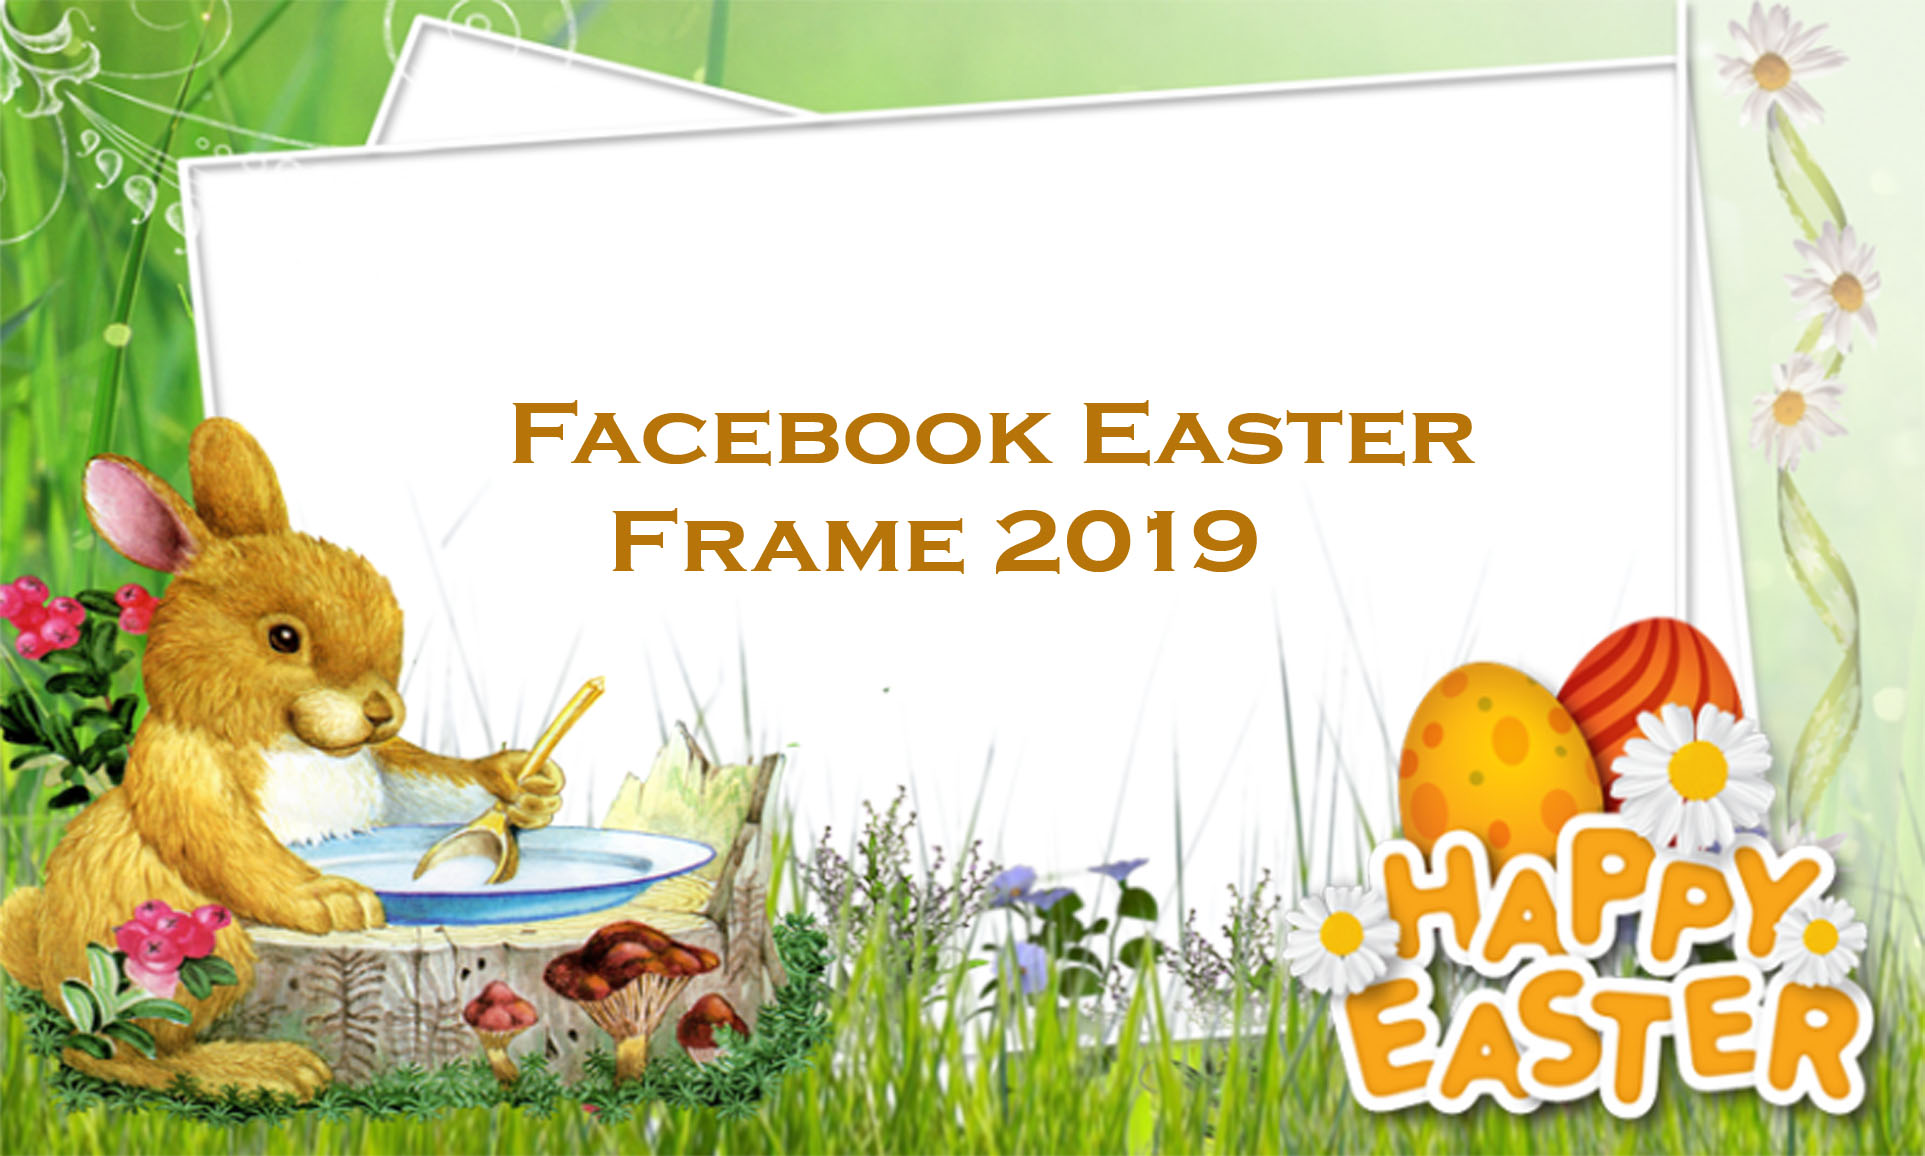 Facebook Easter Frame 2019 - Facebook Frames